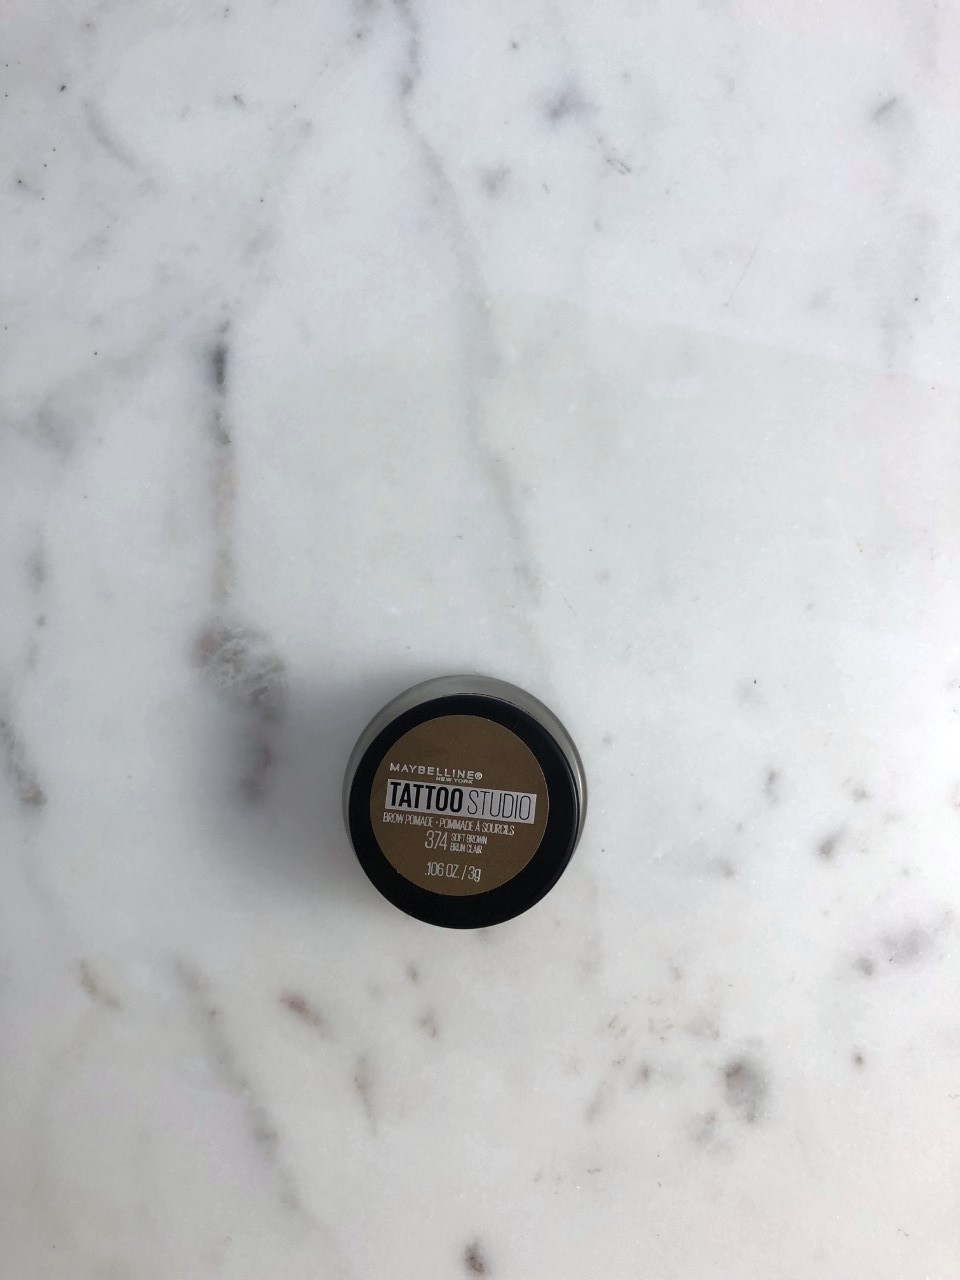 Maybelline New York Tattoo Studio Brow Pomade: A quick review